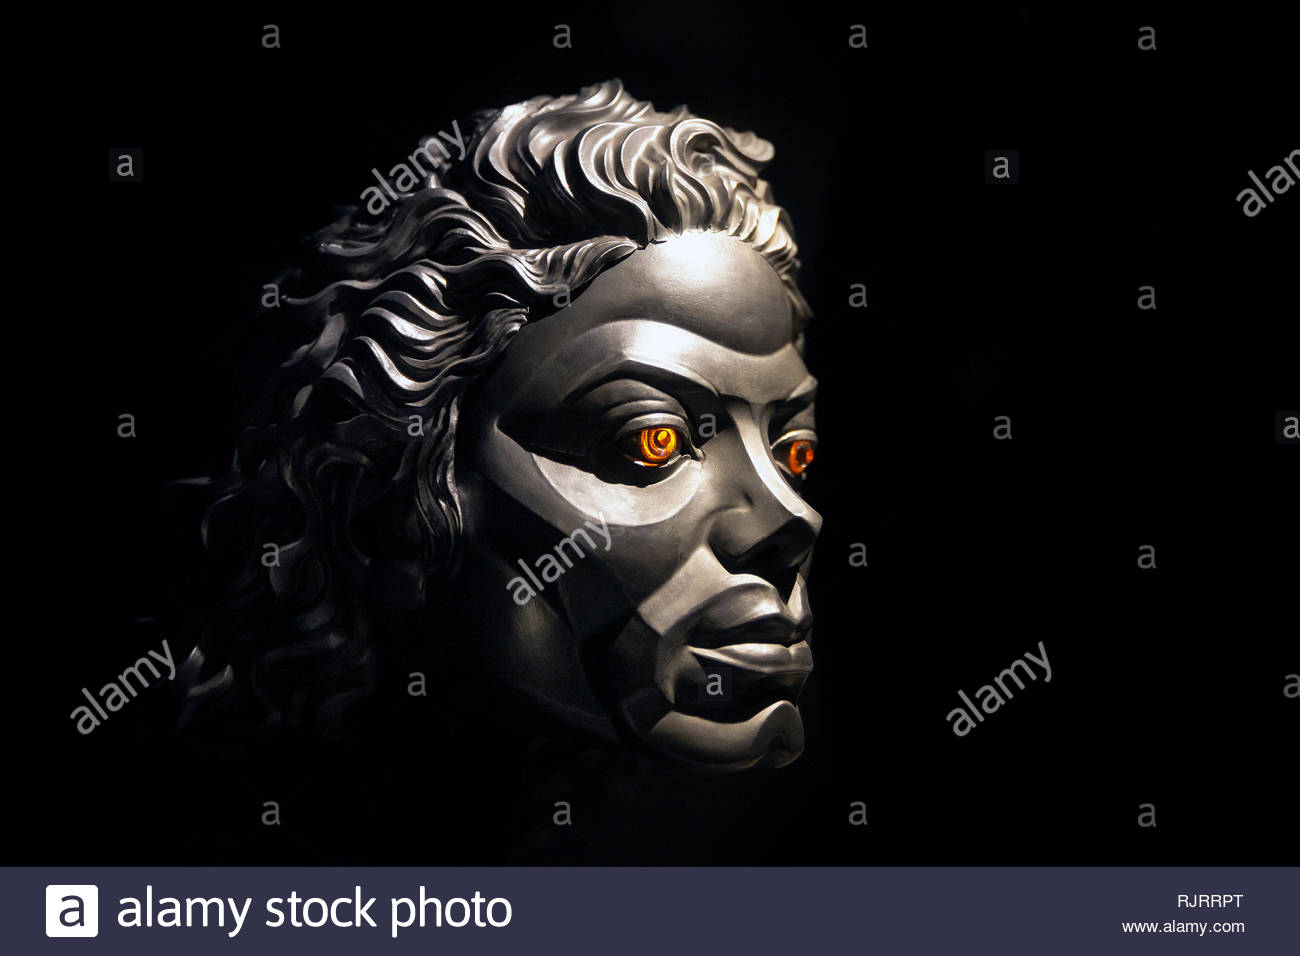 michael-jacksons-robotic-face-seen-in-mi